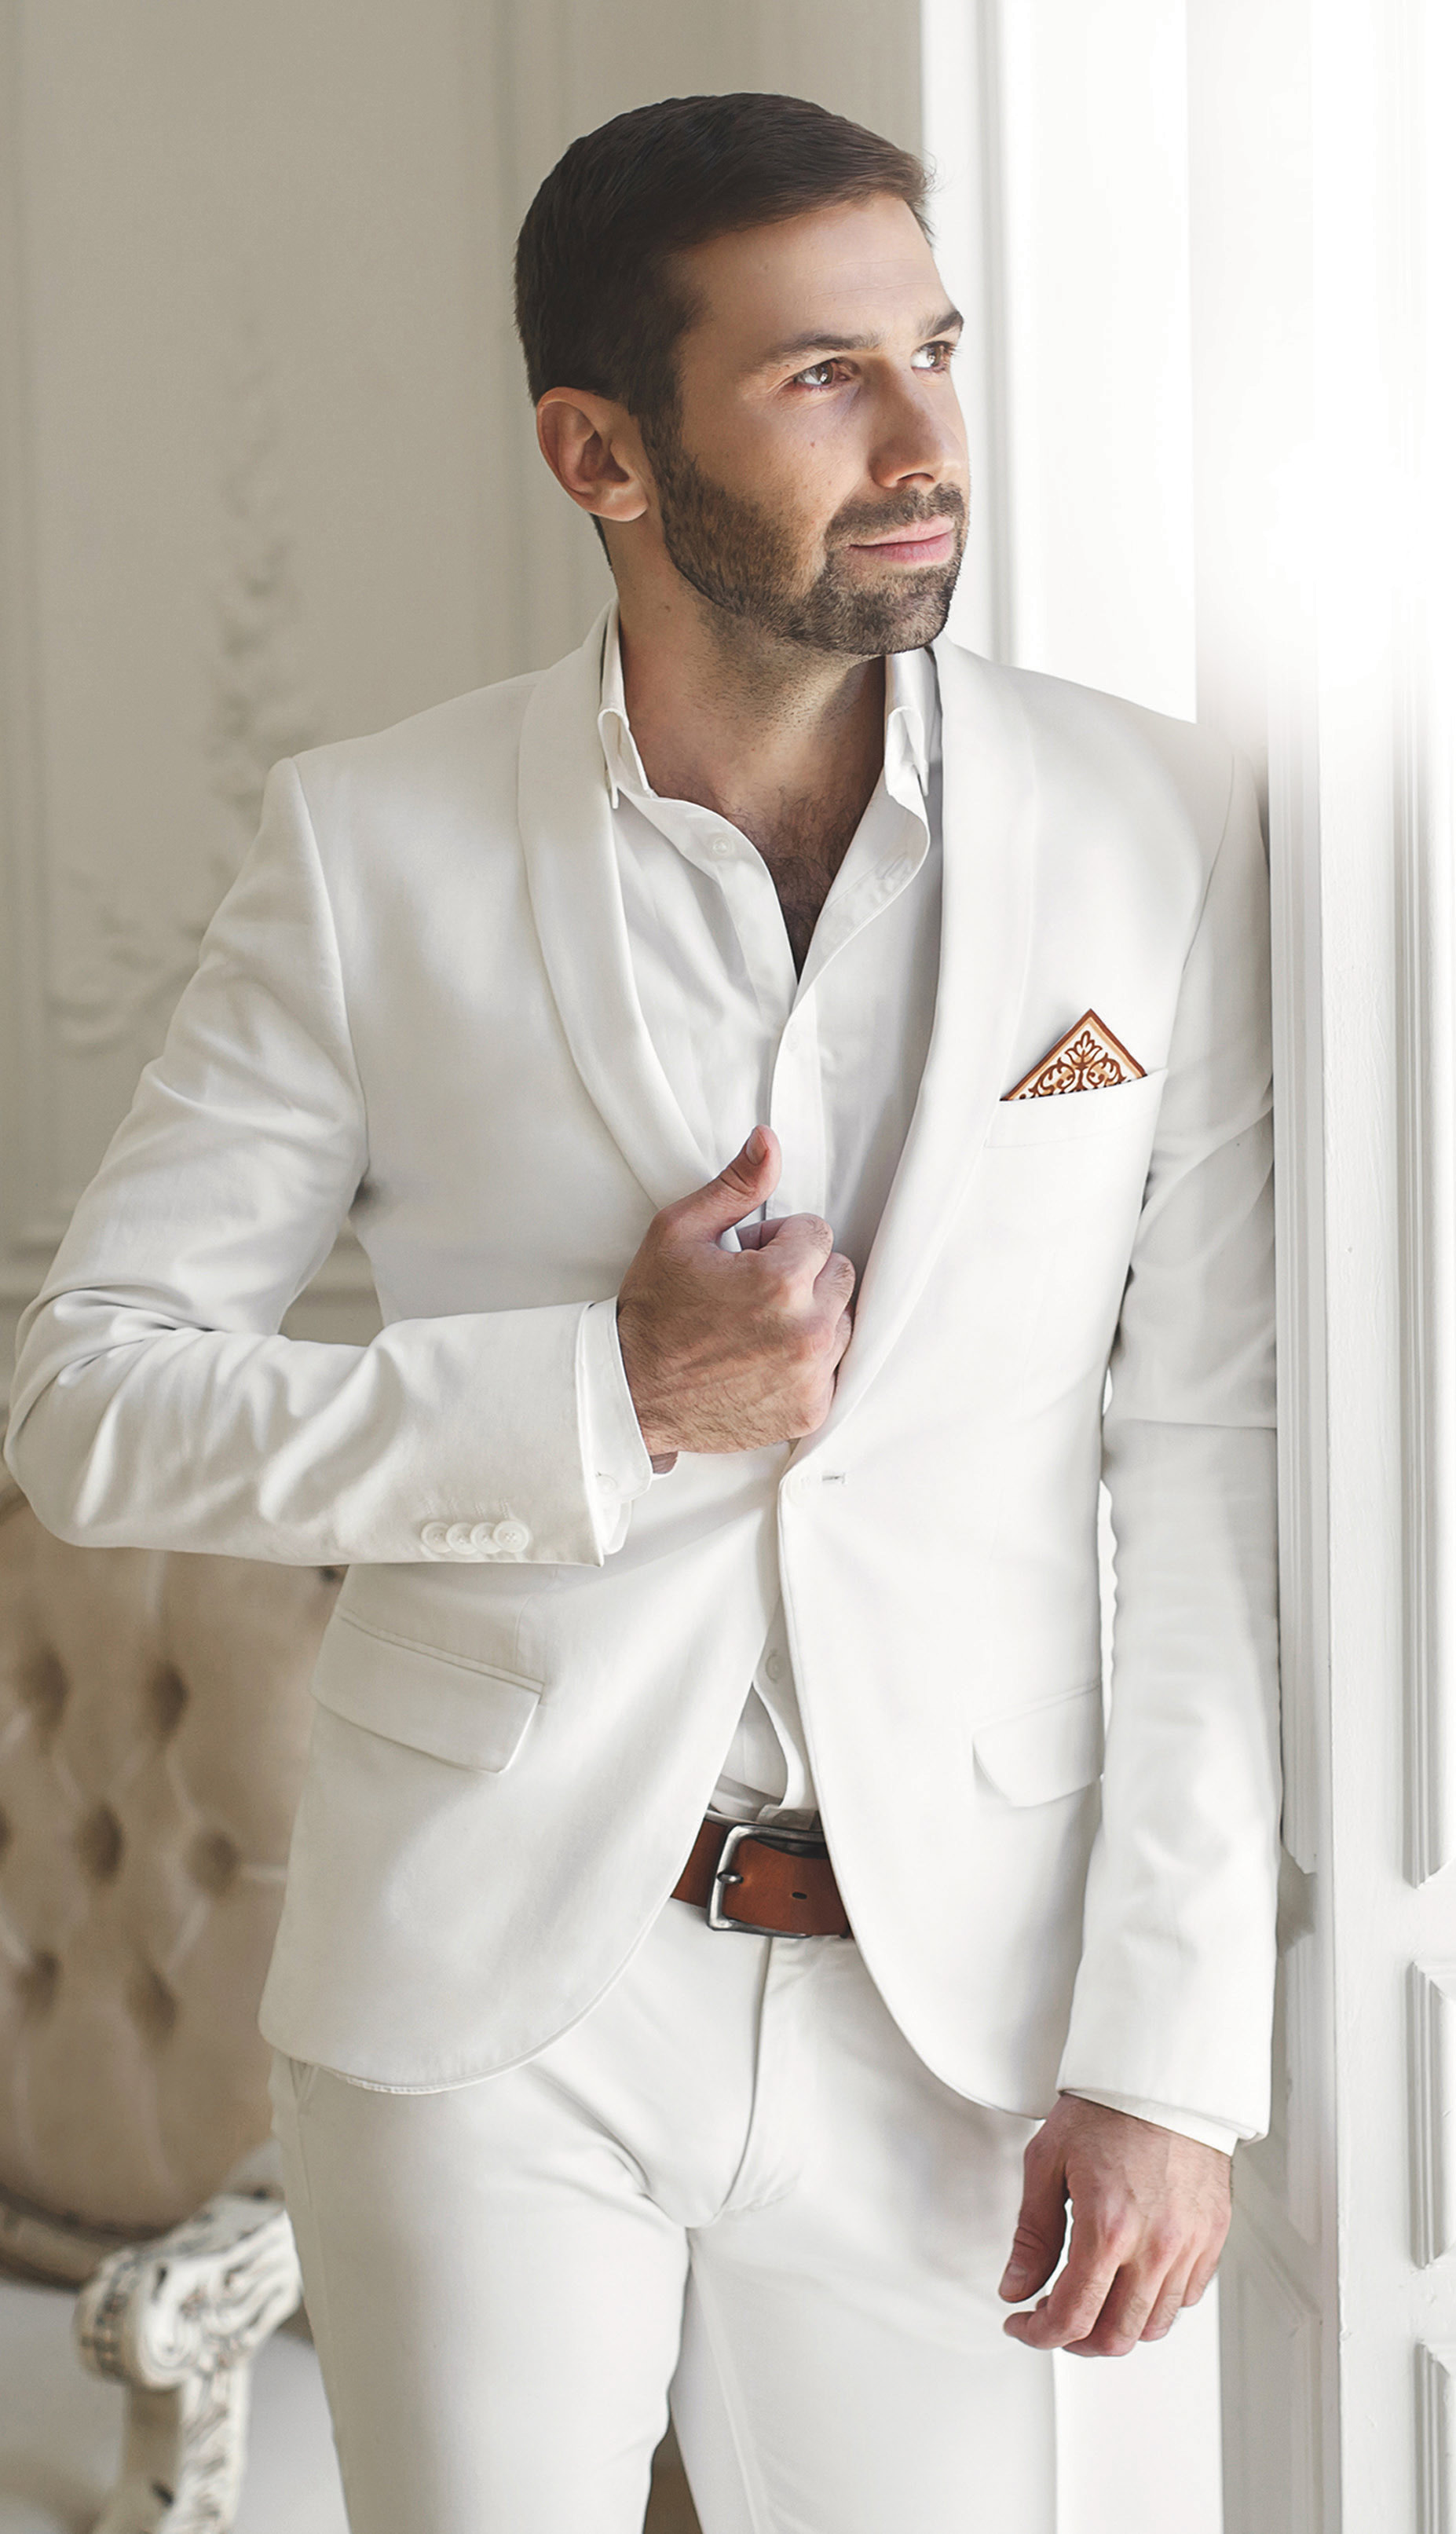 A Dusty Pink Suit Or Black And White Attire? An Over Sized Jacket Or A Snug  Blazer? Relaxed Trousers Or Structured Pants? Sneakers Or Shoes?